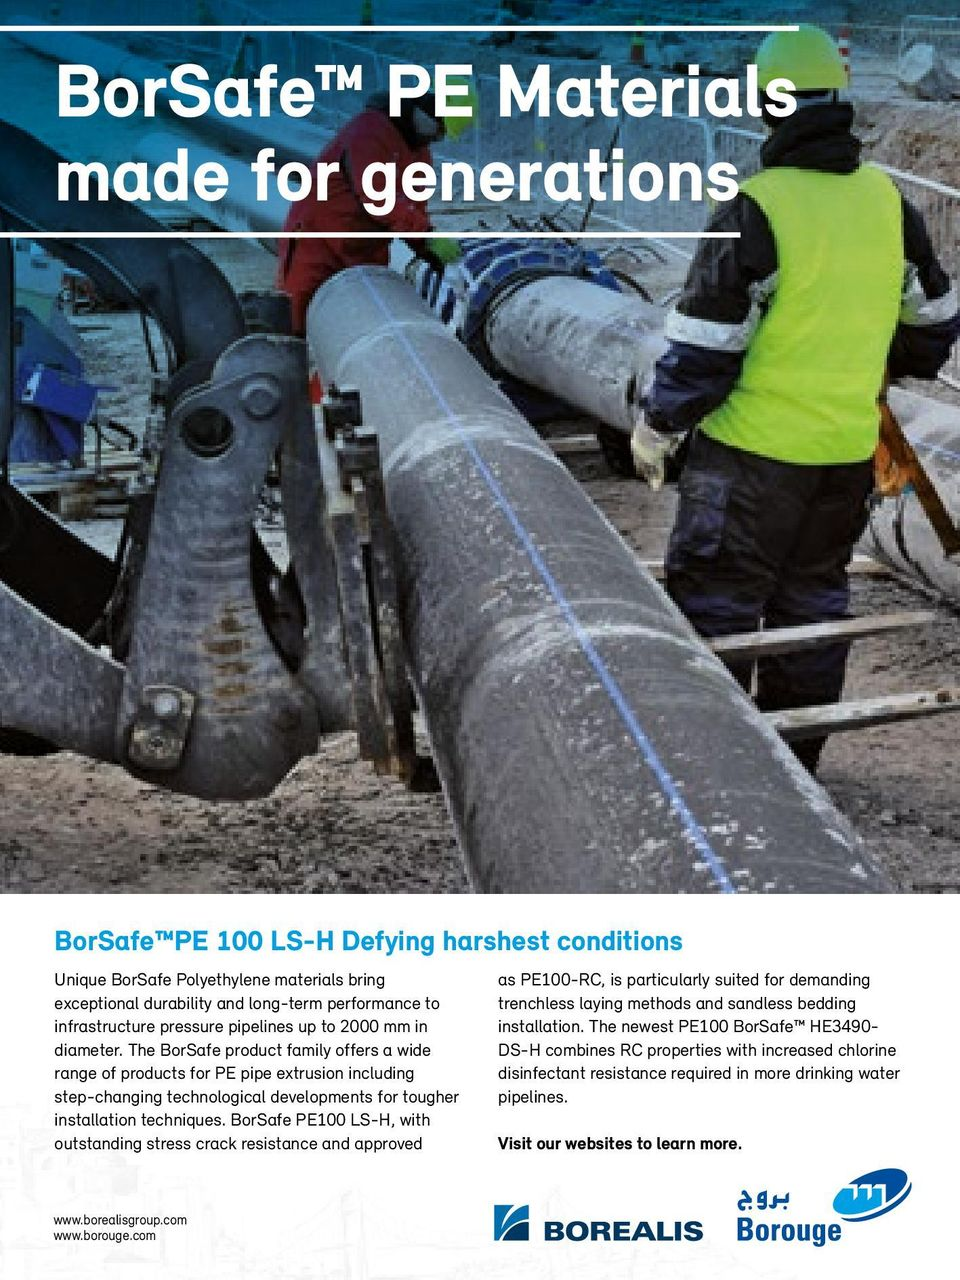 The BorSafe product family offers a wide range of products for PE pipe extrusion including step-changing technological developments for tougher installation techniques.